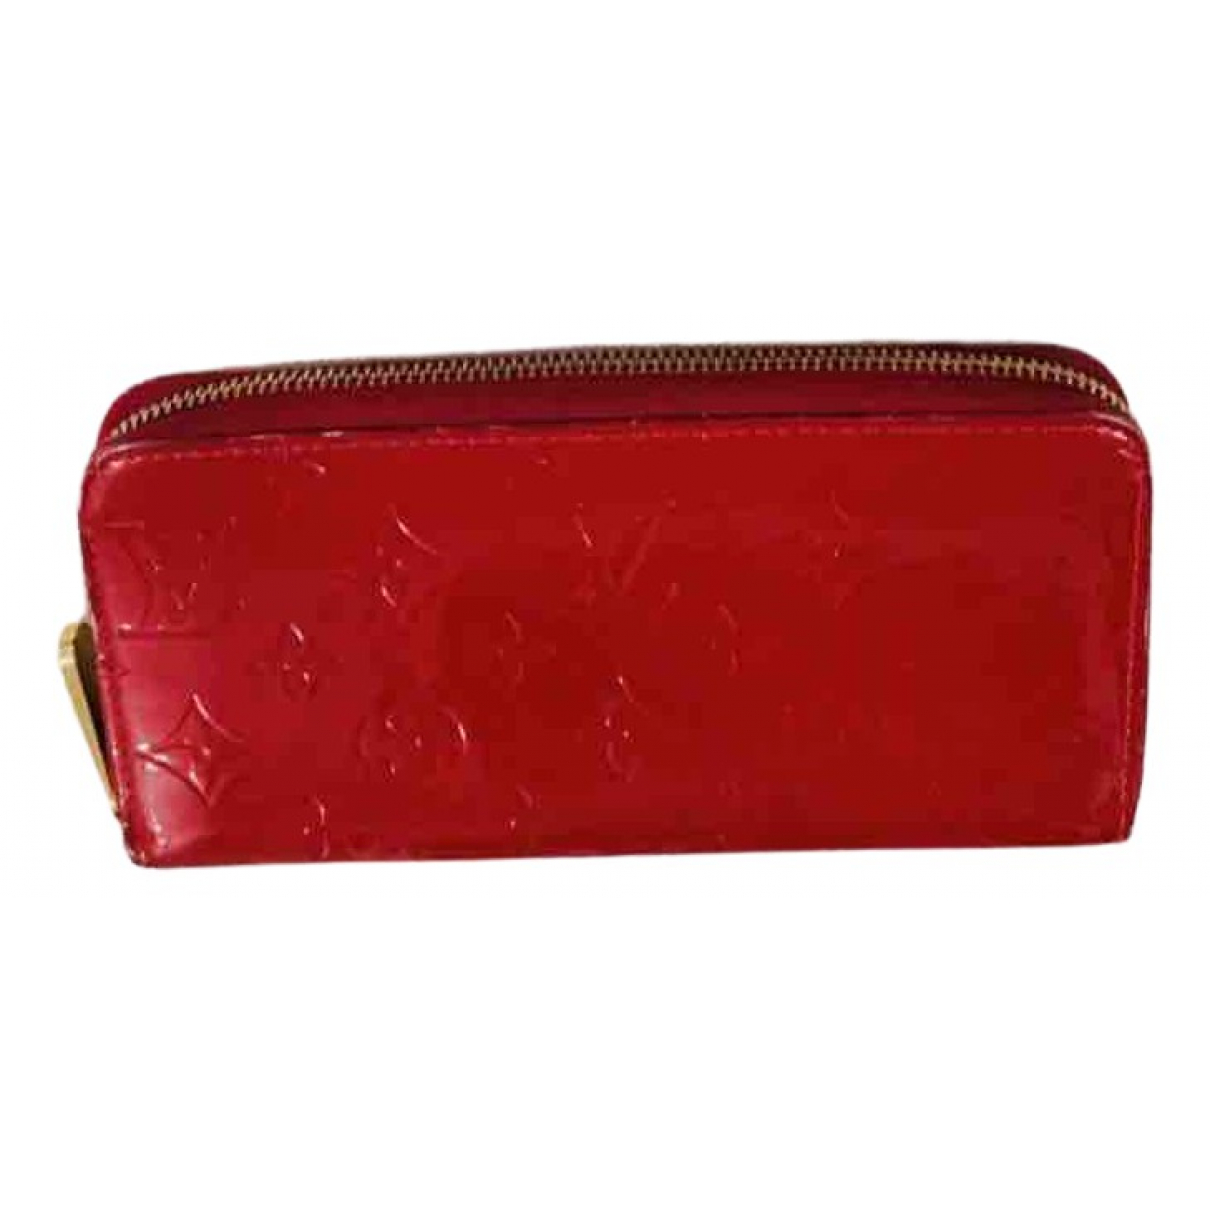 Louis Vuitton Zippy Red Patent leather wallet for Women \N